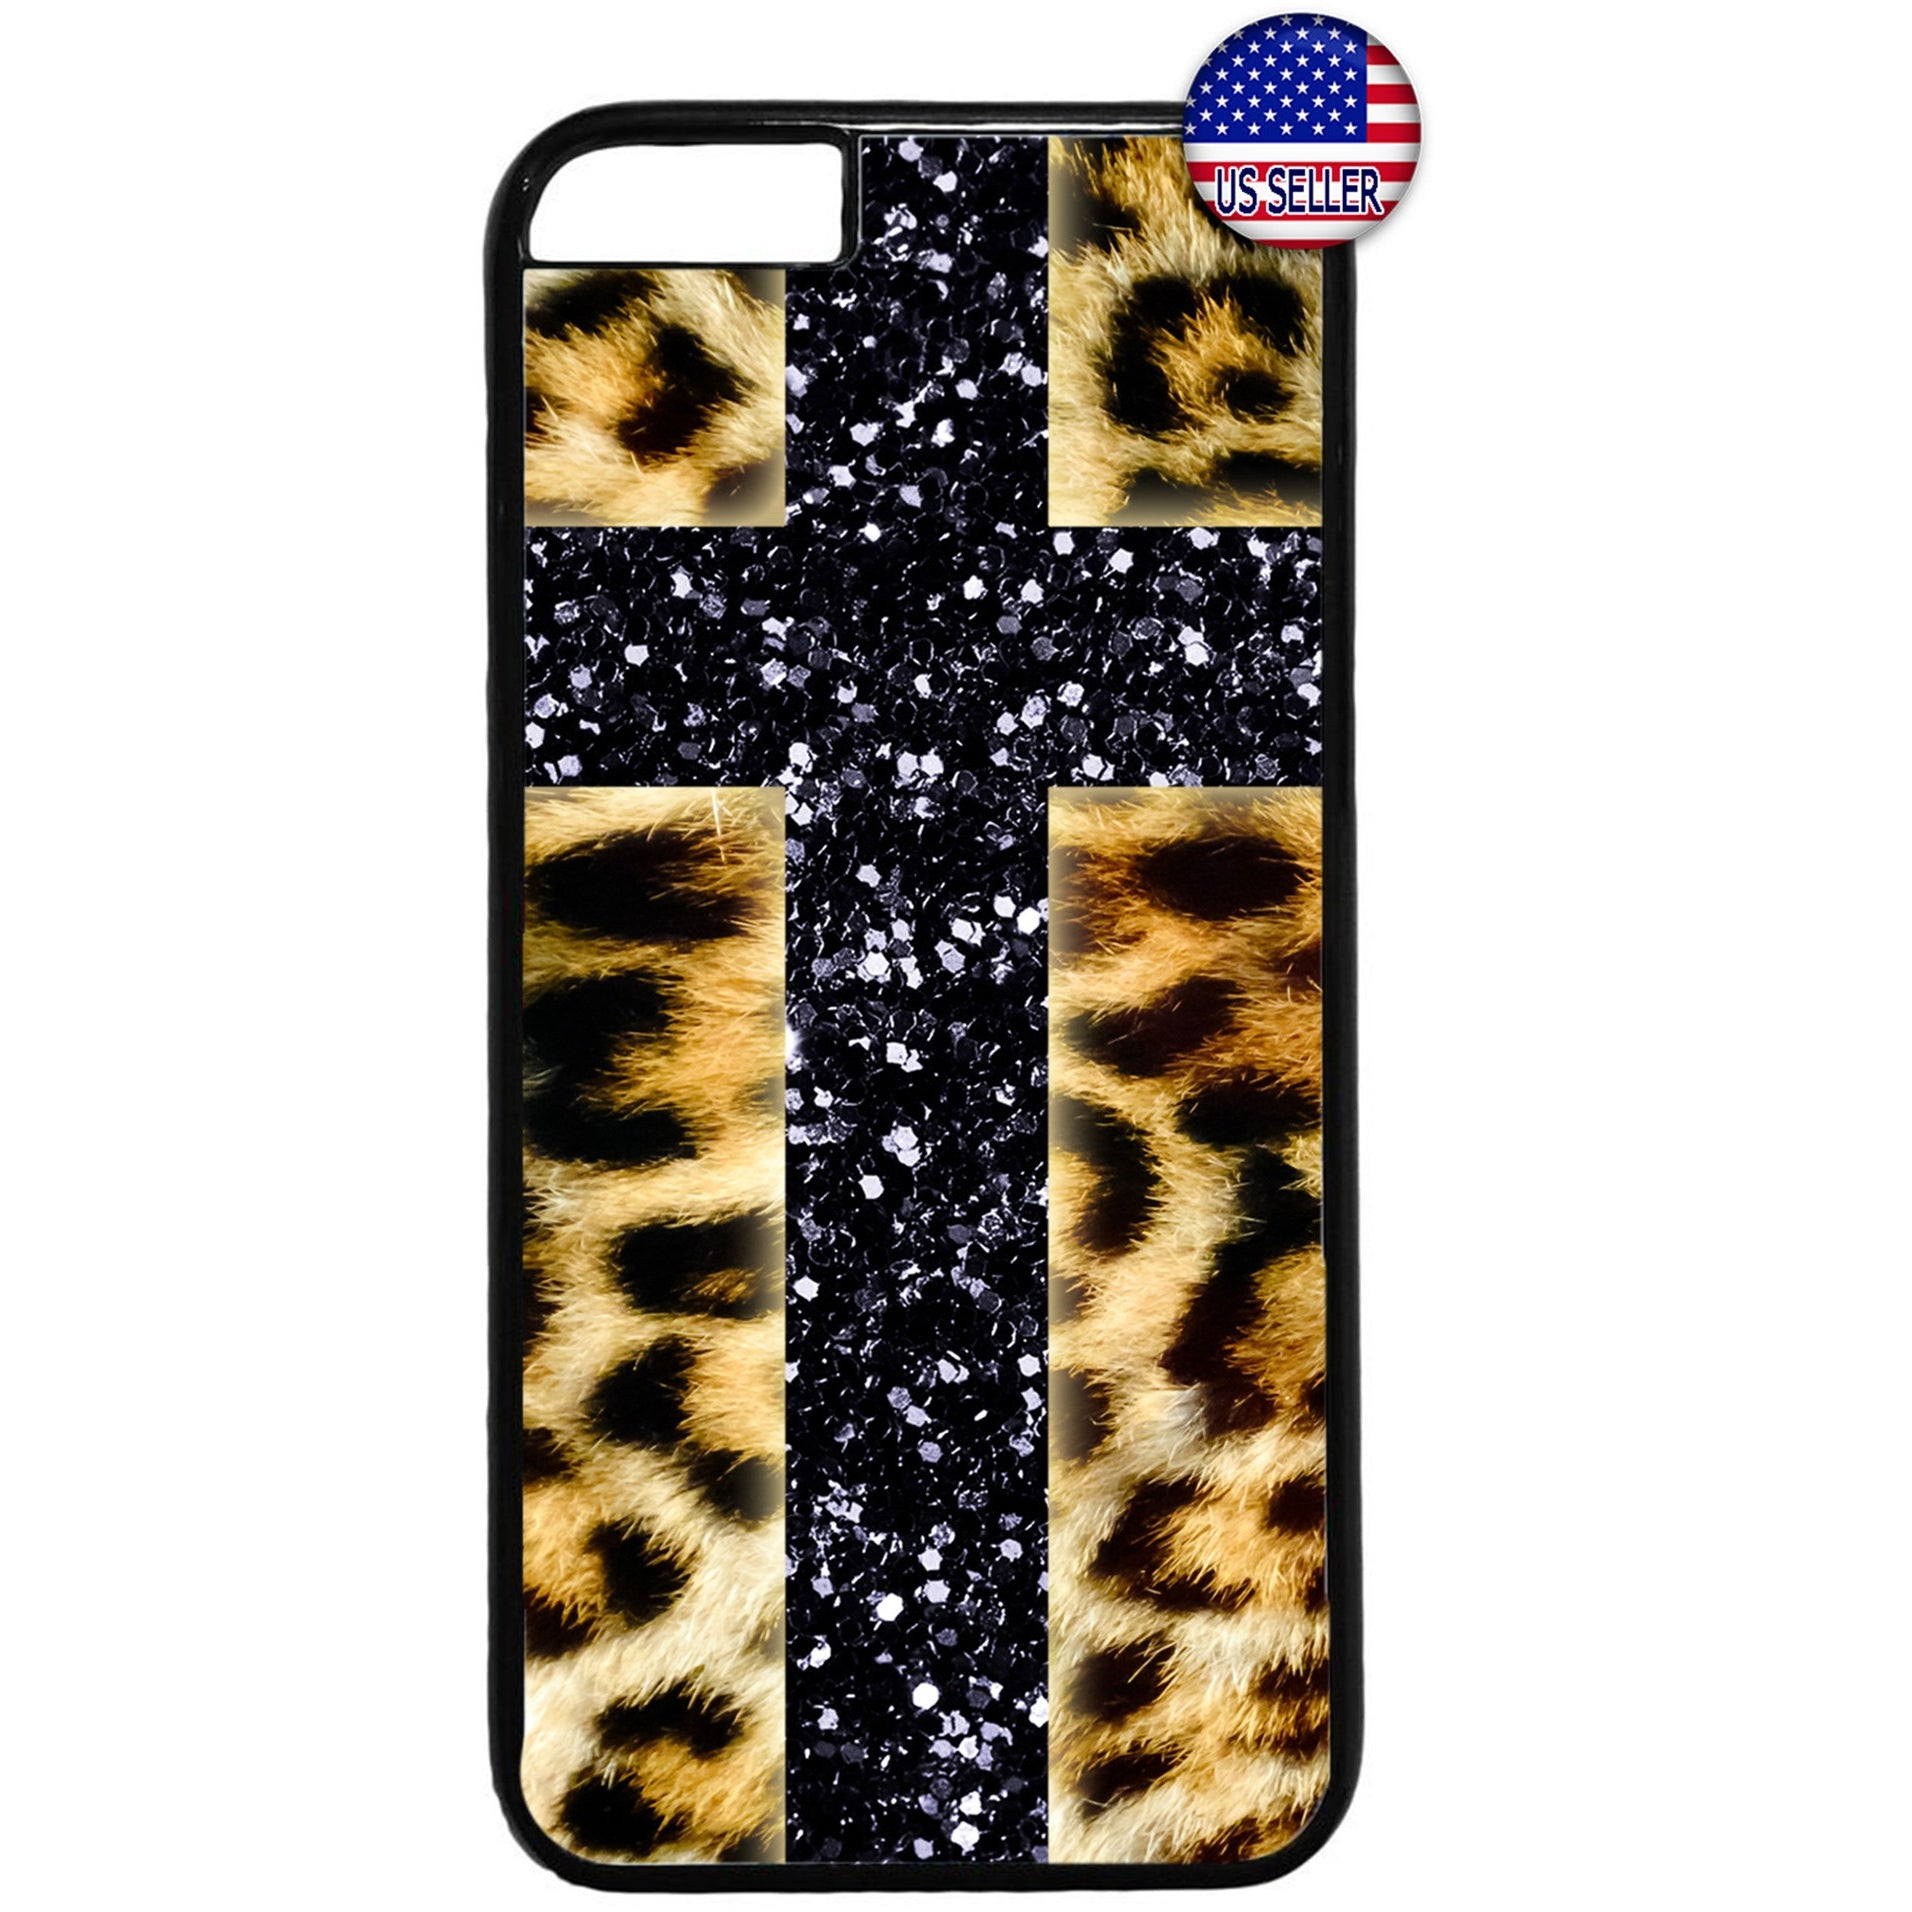 Leopard Christian Cross Jesus Christ Rubber Case Cover For Iphone